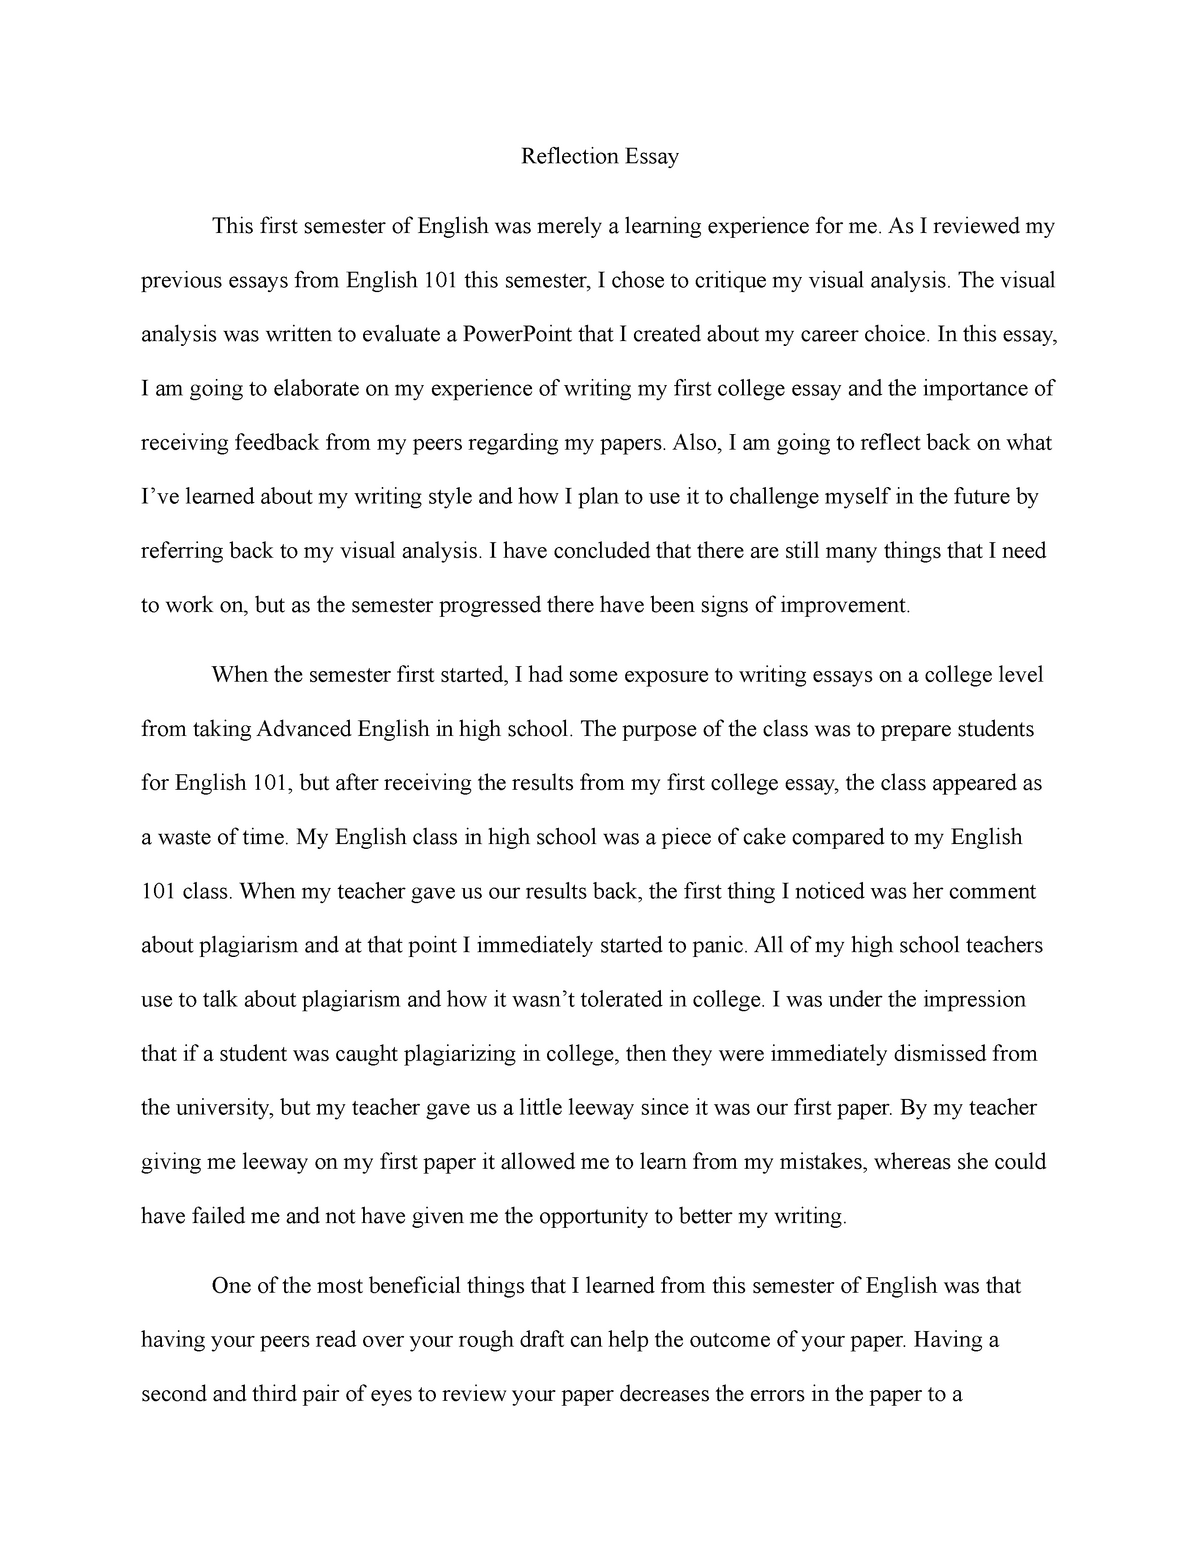 Essay Examples In Literature  My Hobby English Essay also Examples Of Essay In Literature Reflection Essay  Grade A  Eh  English Composition I  Political Science Essay